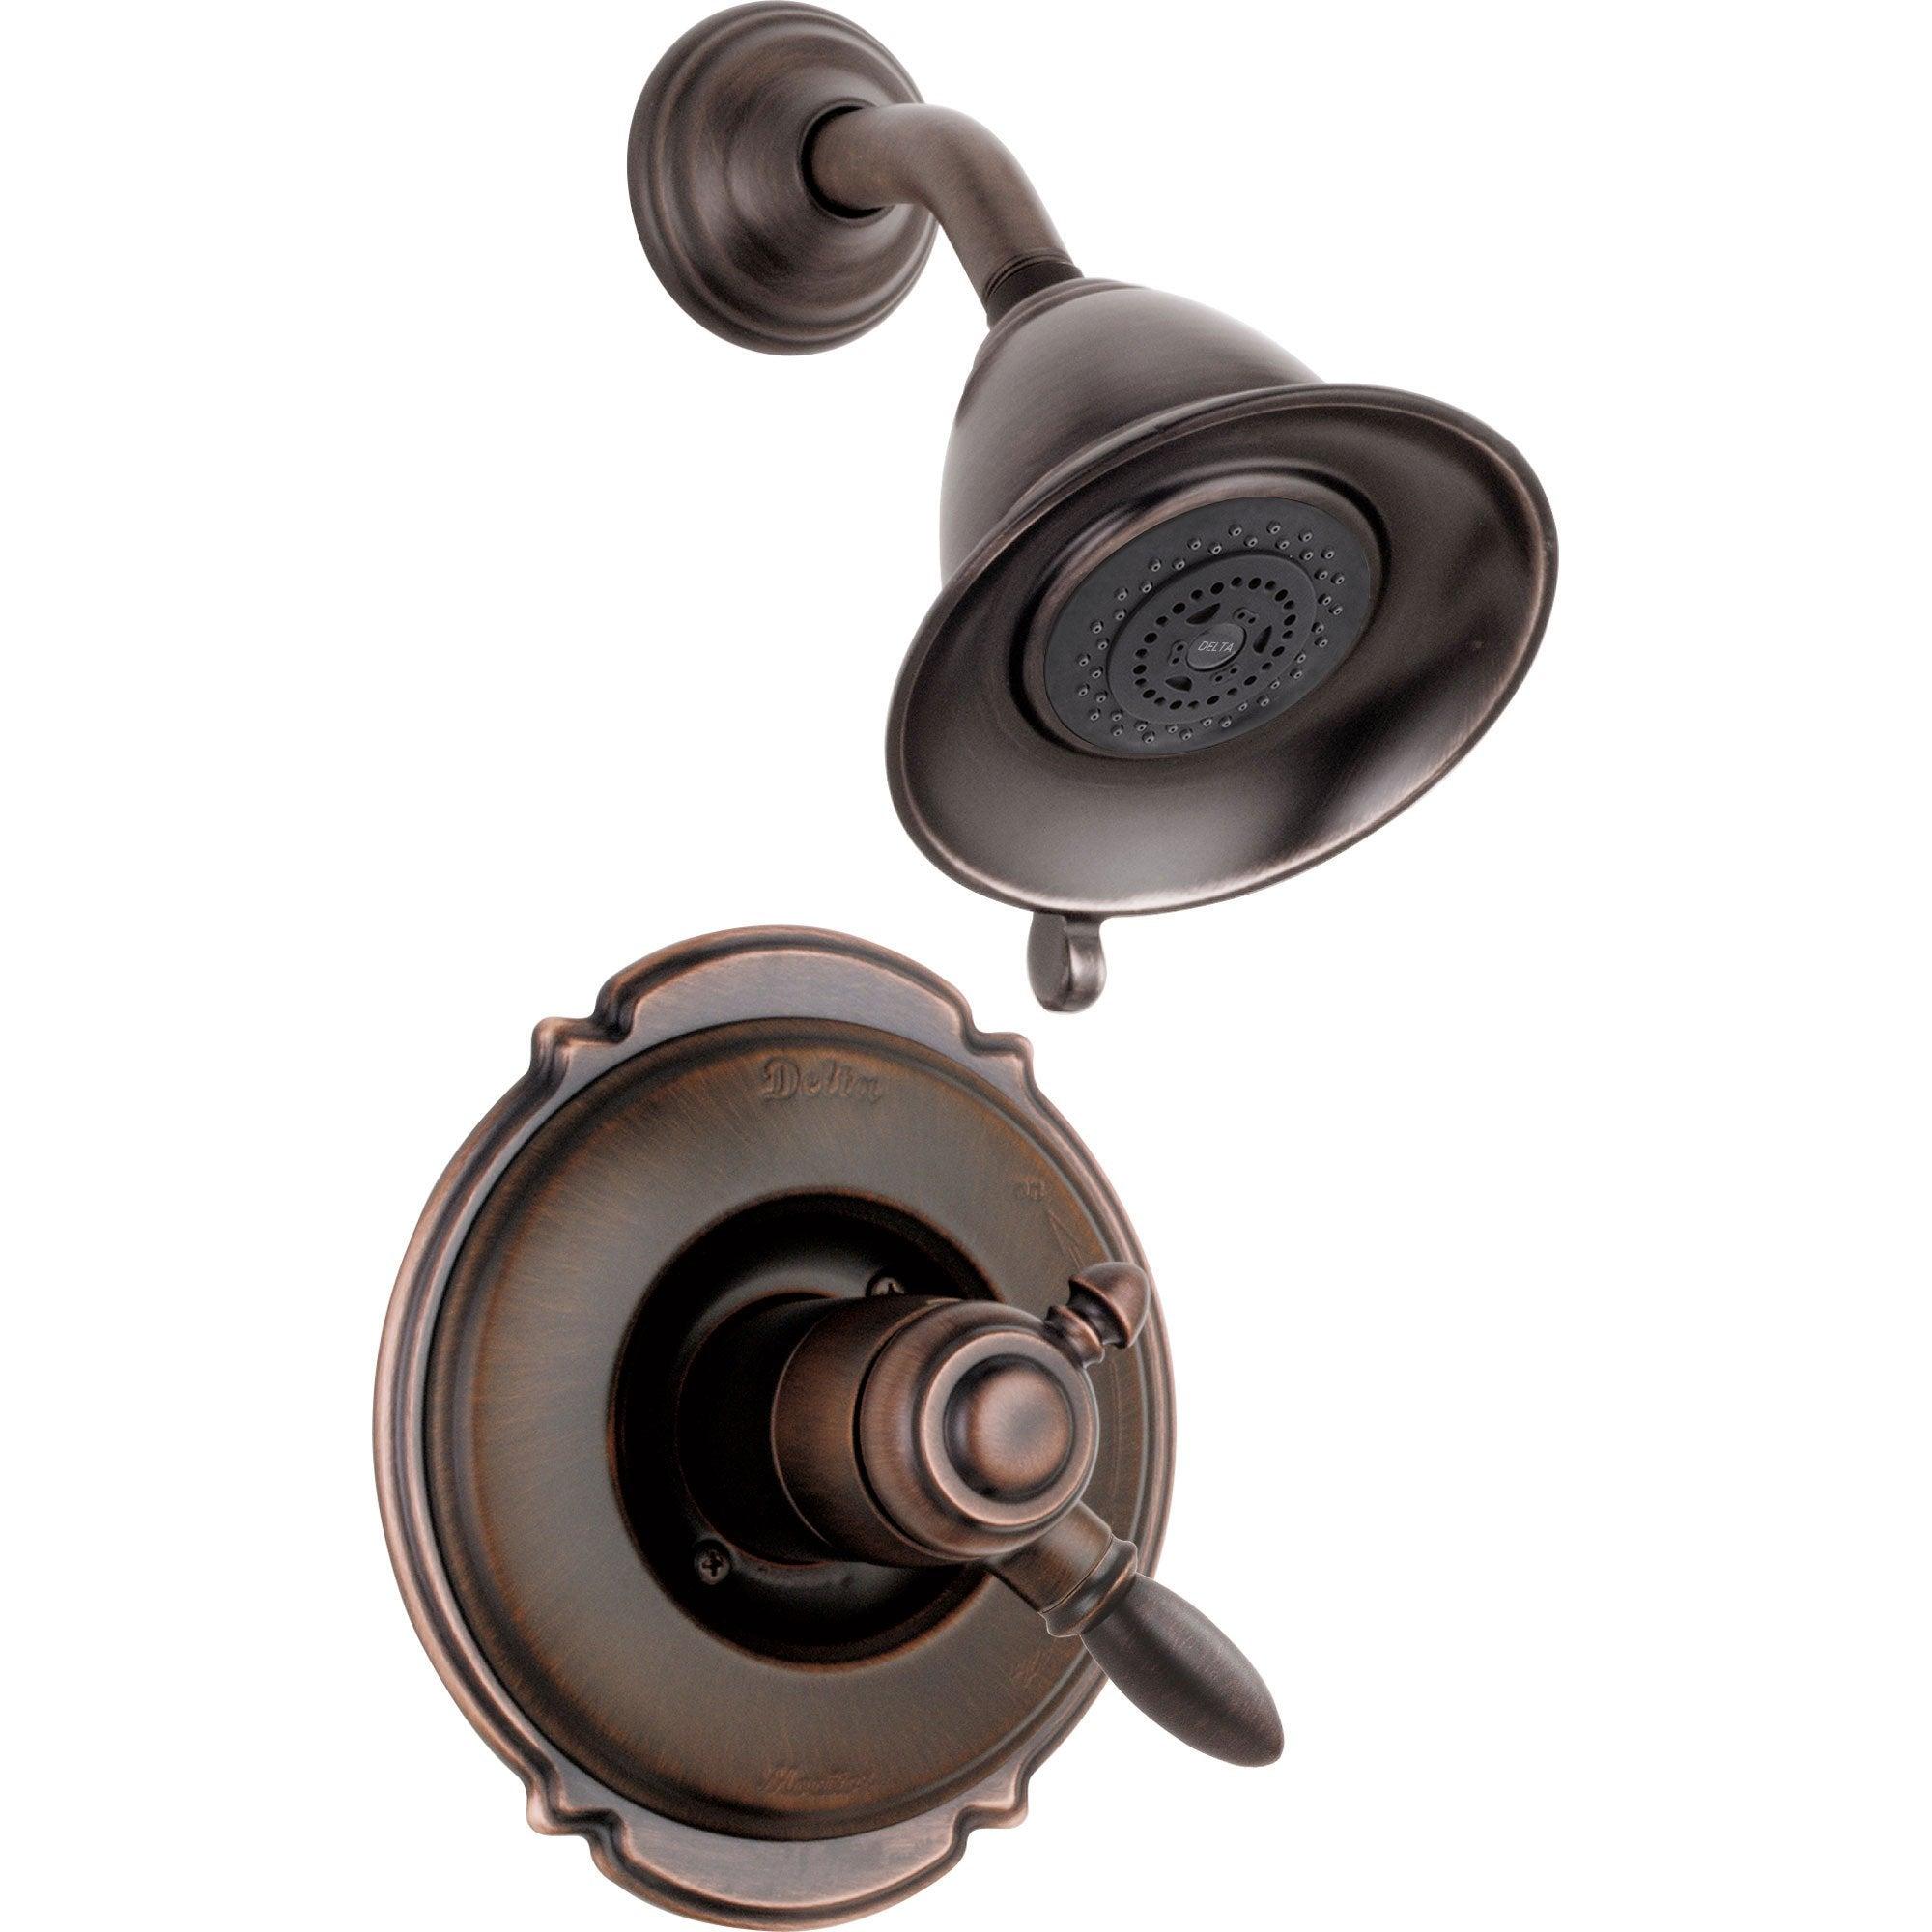 Delta Victorian Dual Control Temp/Volume Venetian Bronze Shower with Valve D764V